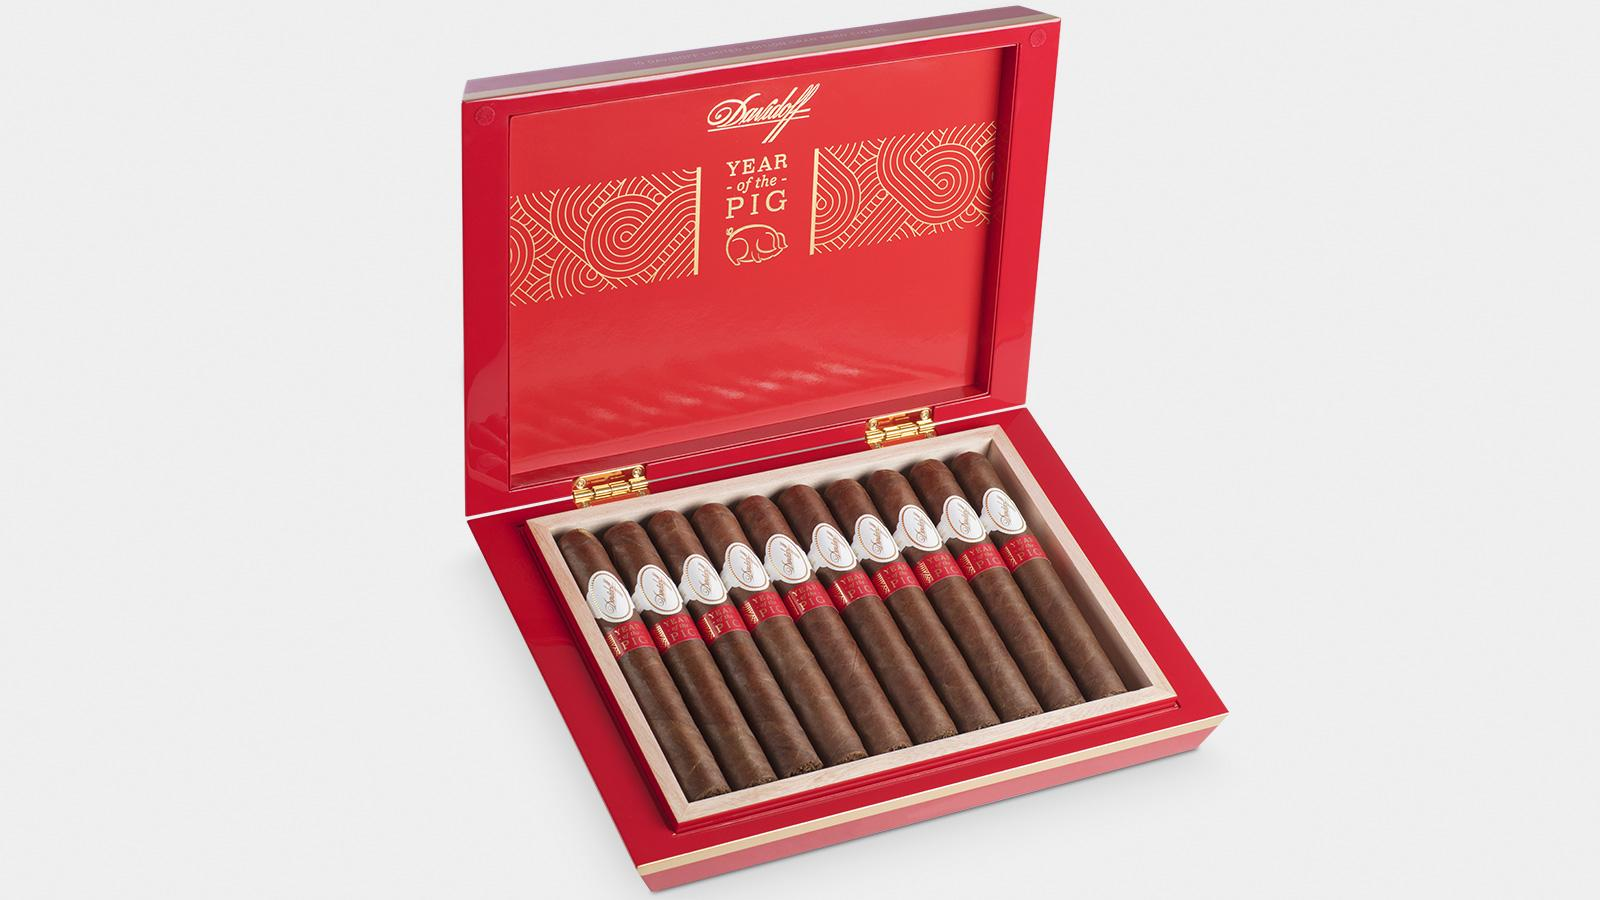 Davidoff Releasing Year Of The Pig